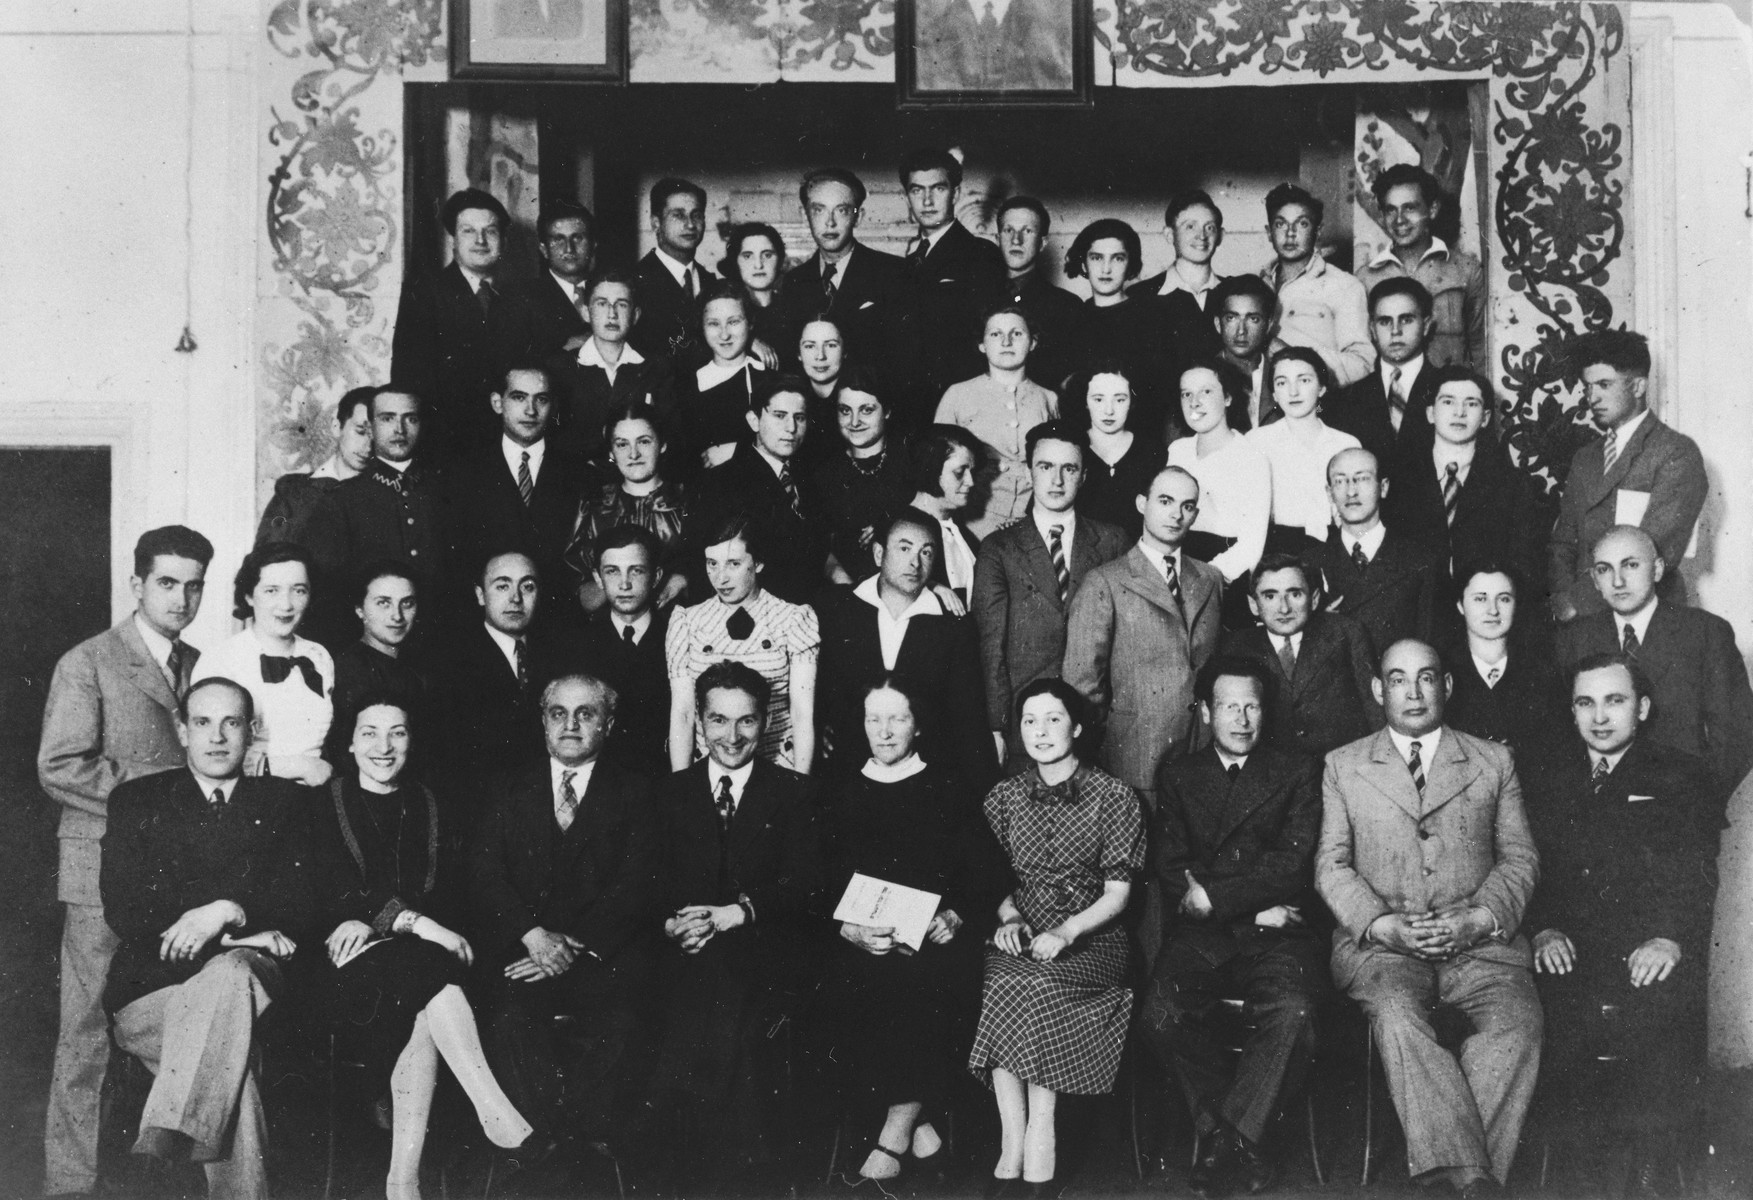 Group portrait of the alumni of the Hebrew language Tarbut school in Vilna taken on the twentieth anniversary of the Hebrew gymnasium.    Among those pictured is Ralph Denishevsky (front row, left).